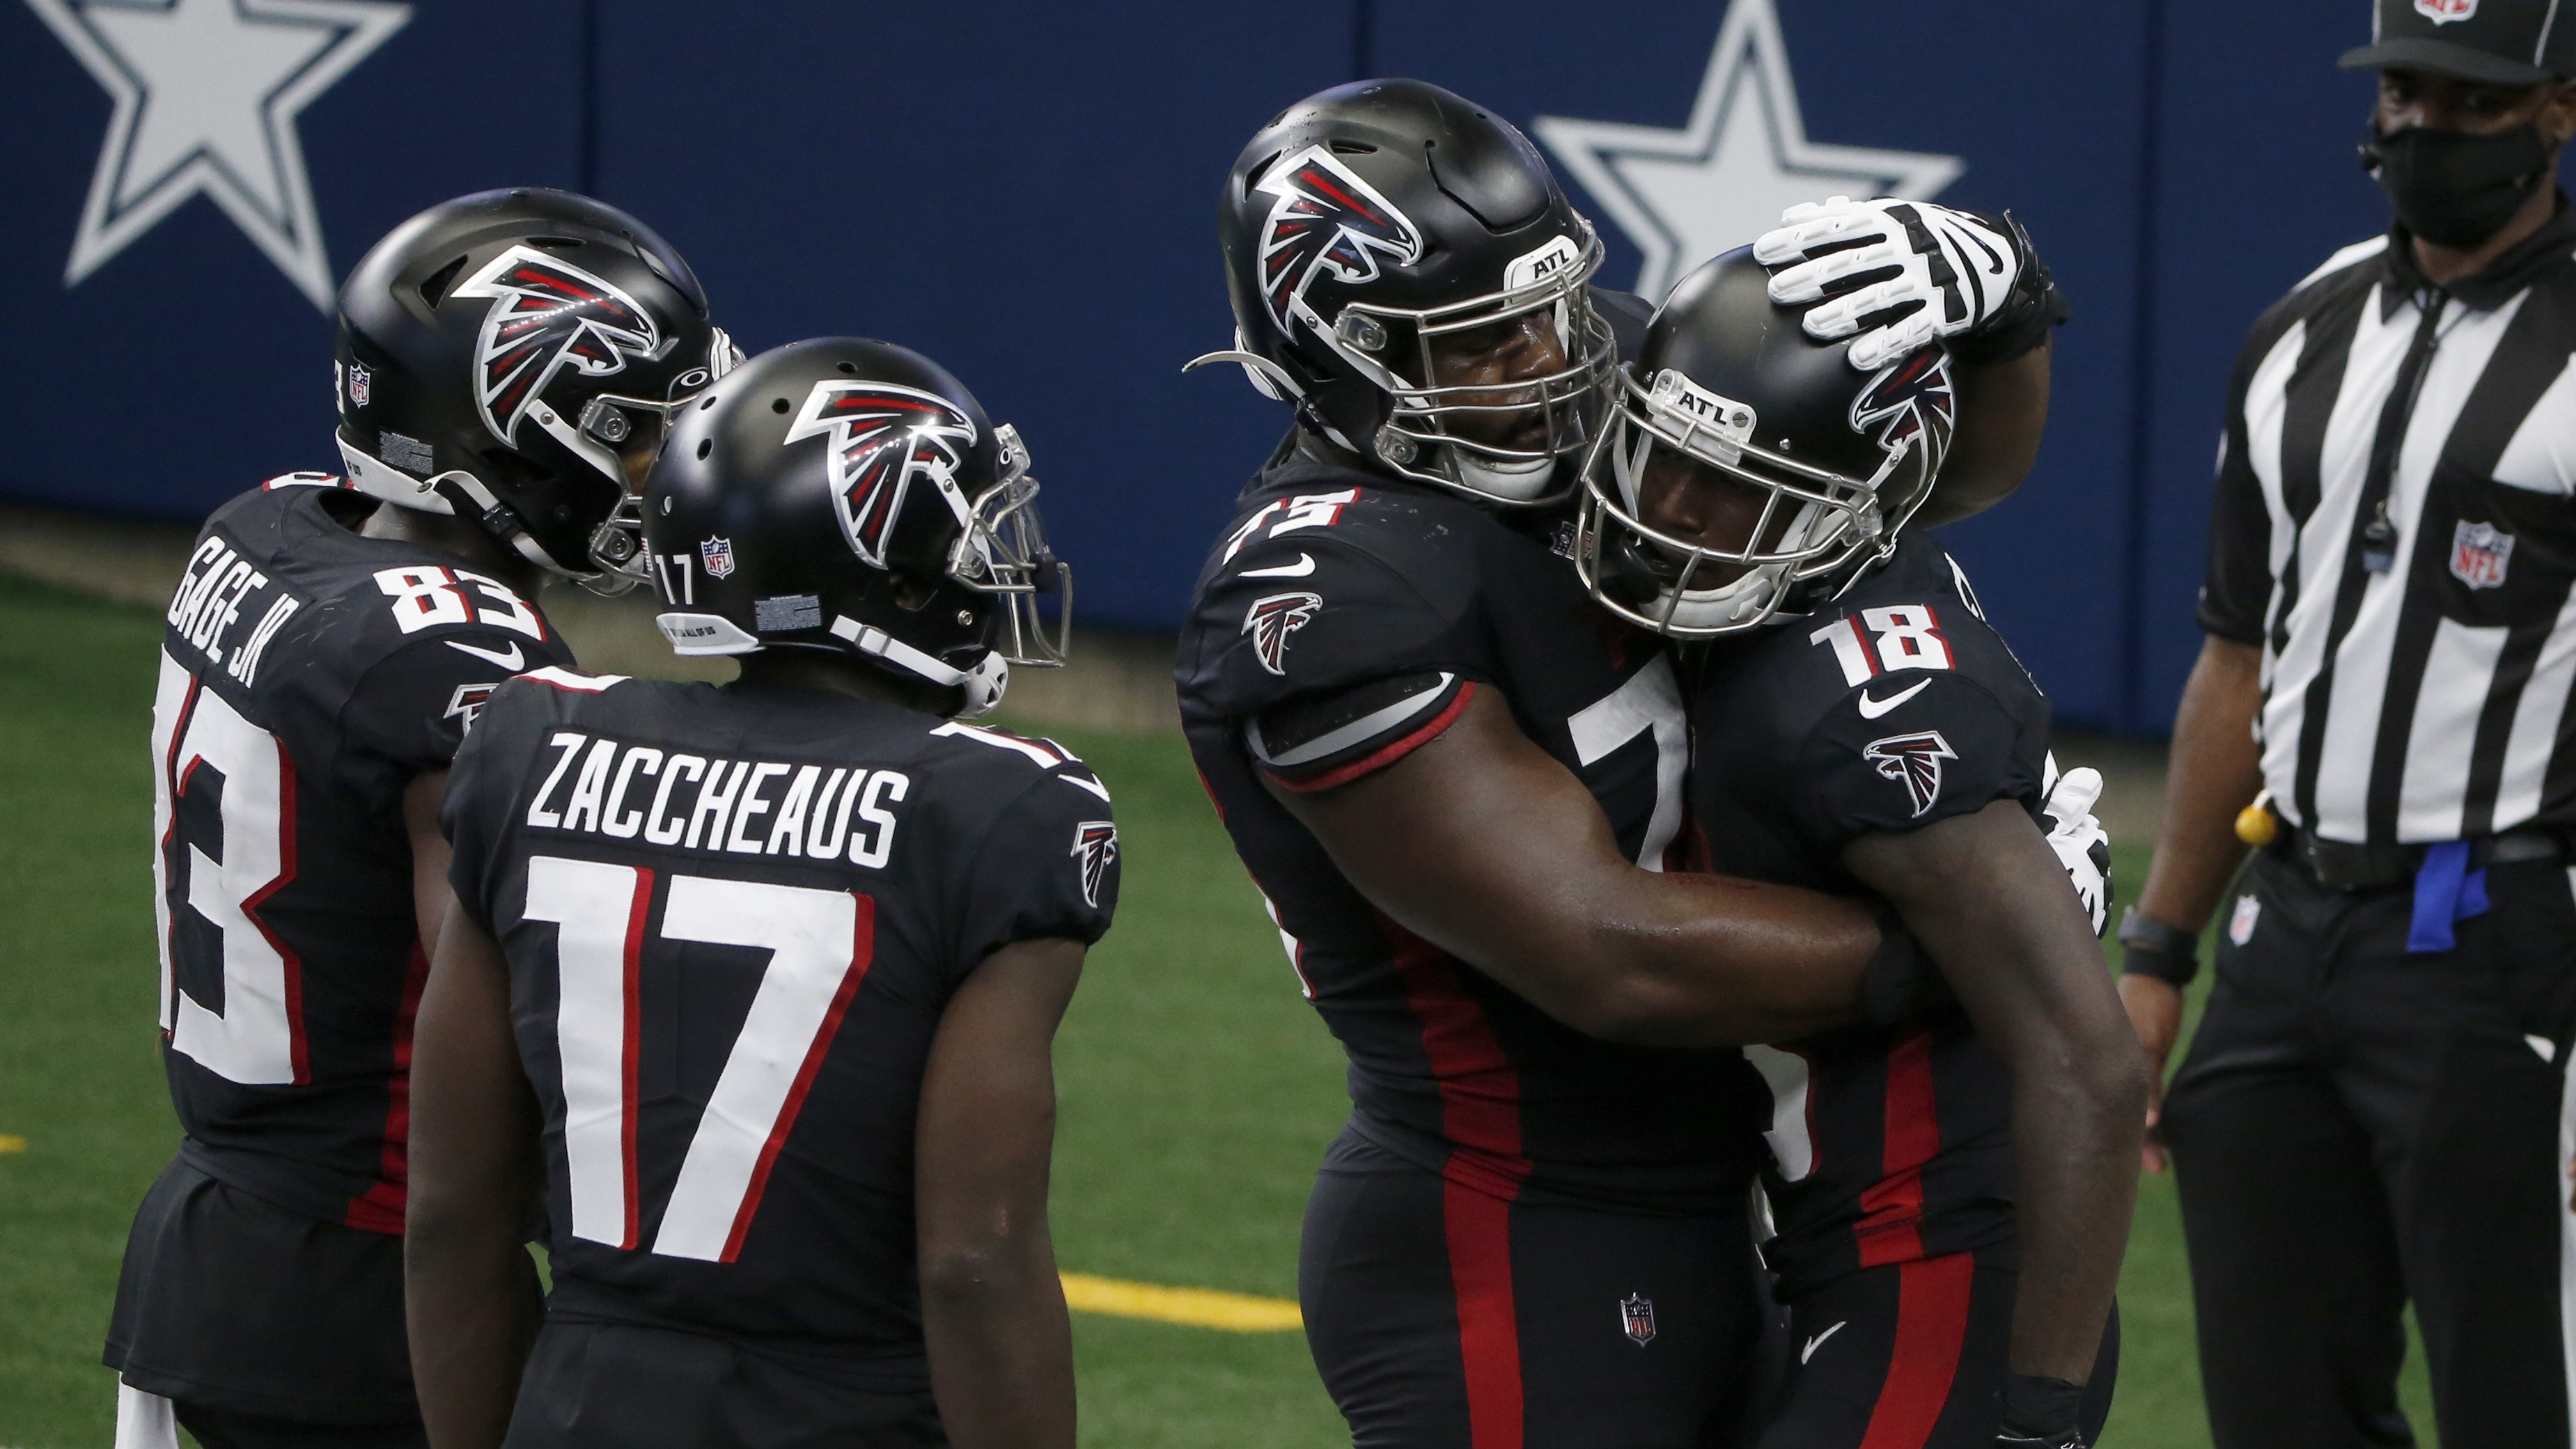 New Wrinkle In This Fold Falcons First To Lose When Offense This Good